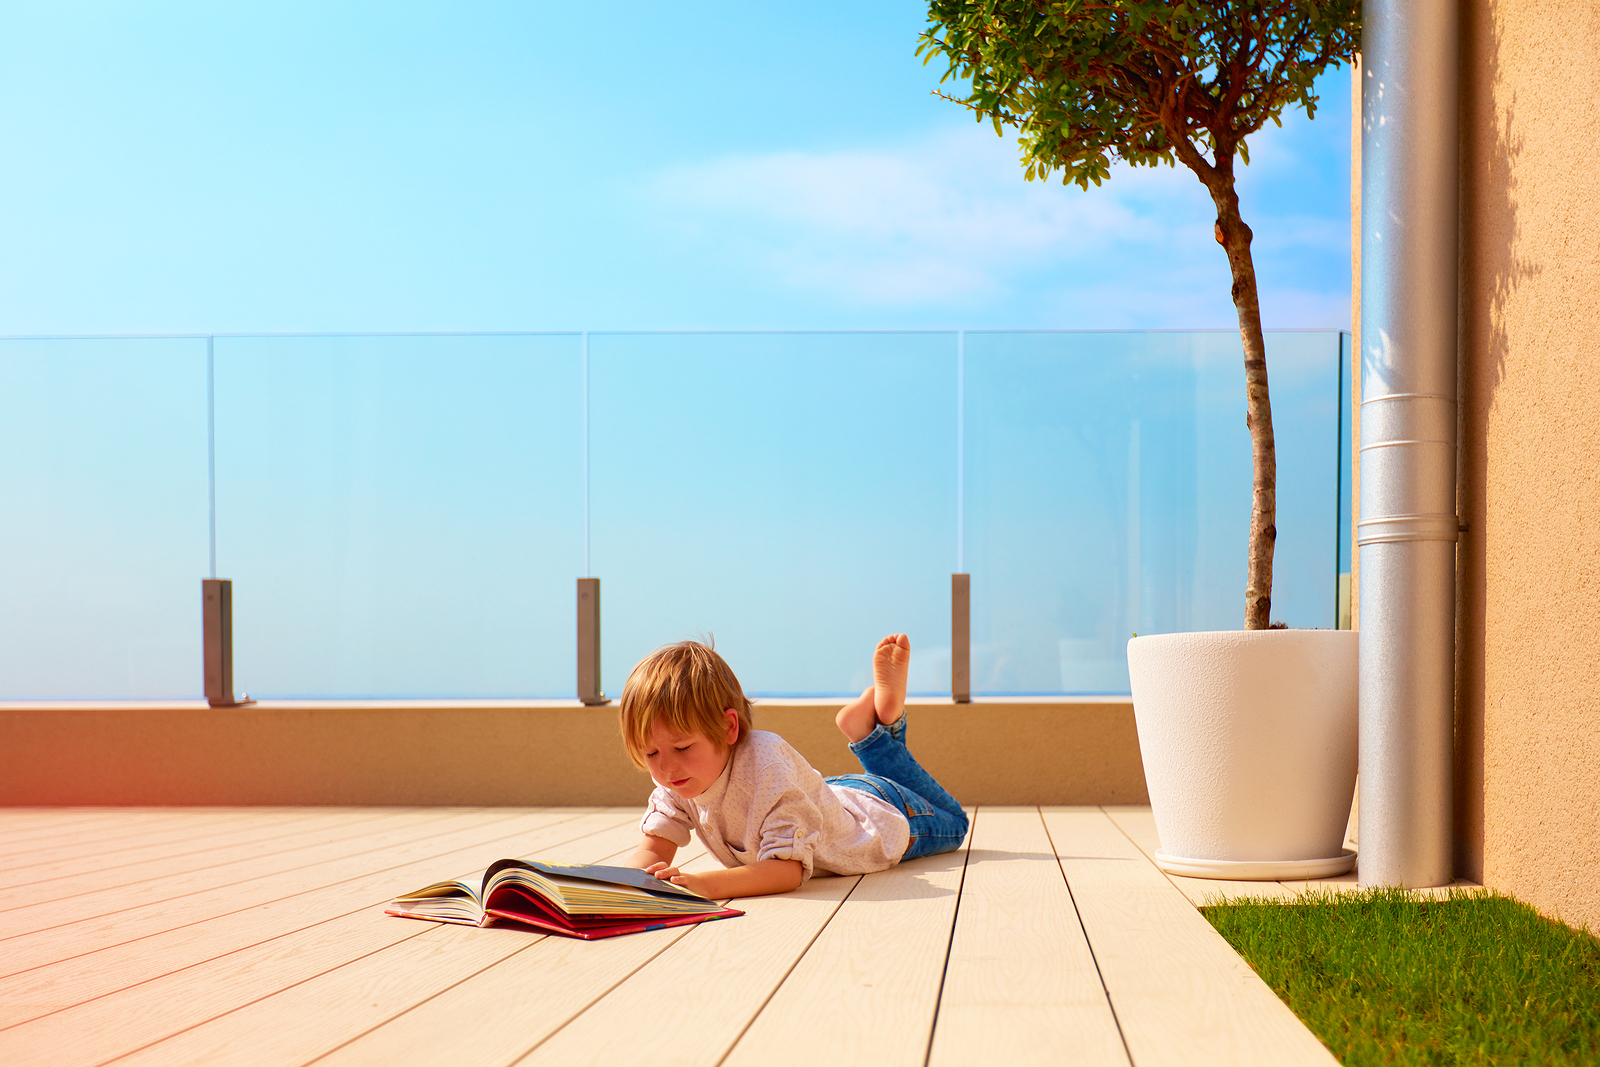 Young Boy, Kid Reading Book On Rooftop Terrace, While Lying Down